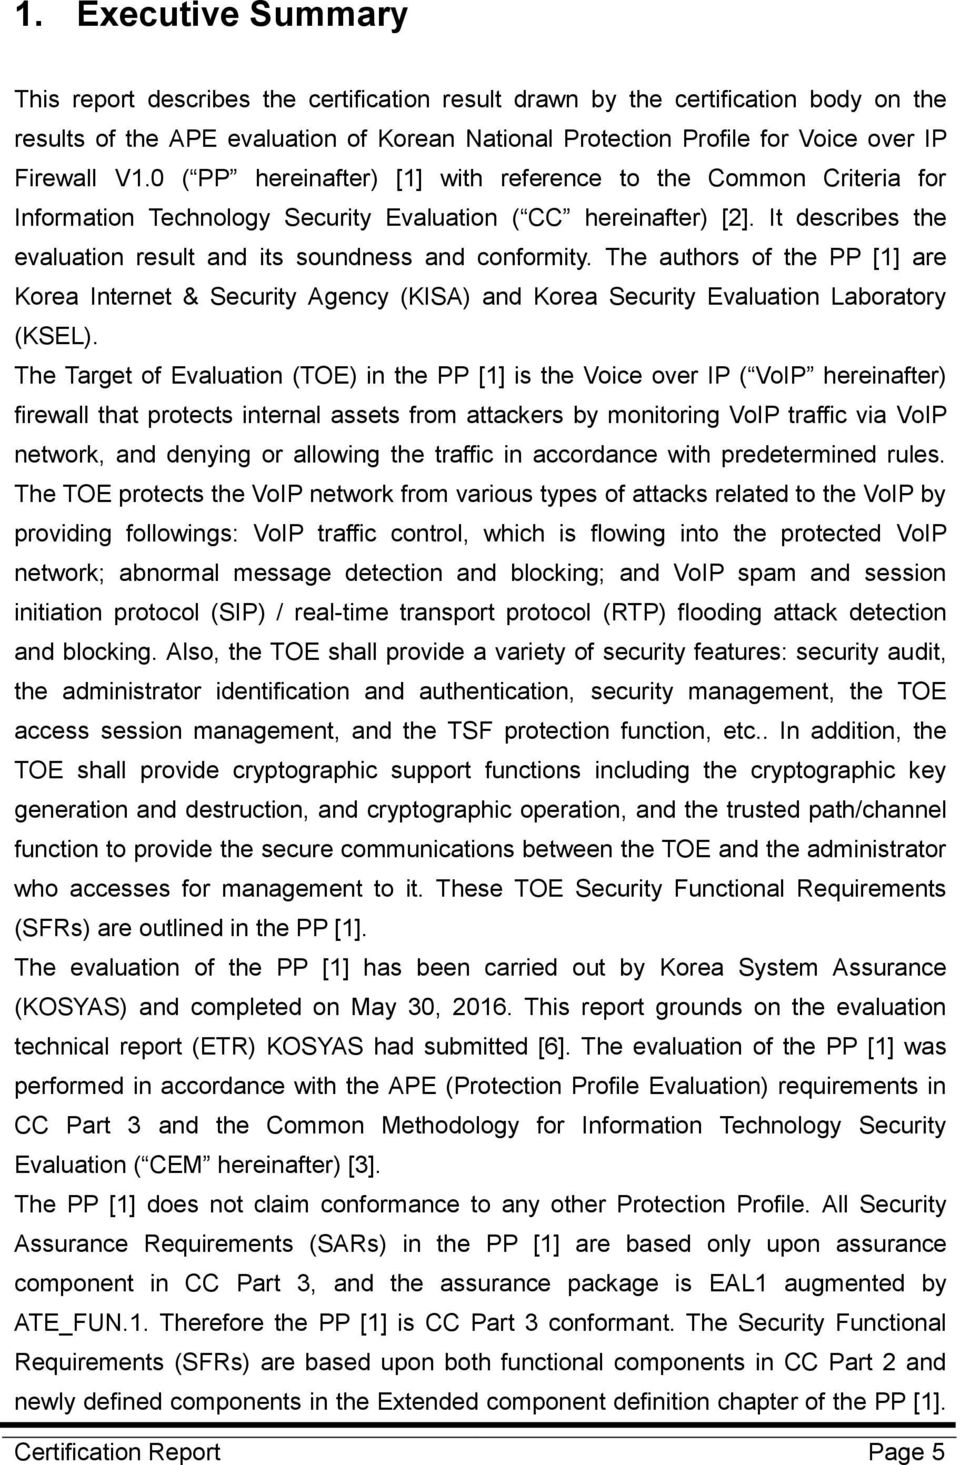 It describes the evaluation result and its soundness and conformity. The authors of the PP [1] are Korea Internet & Security Agency (KISA) and Korea Security Evaluation Laboratory (KSEL).